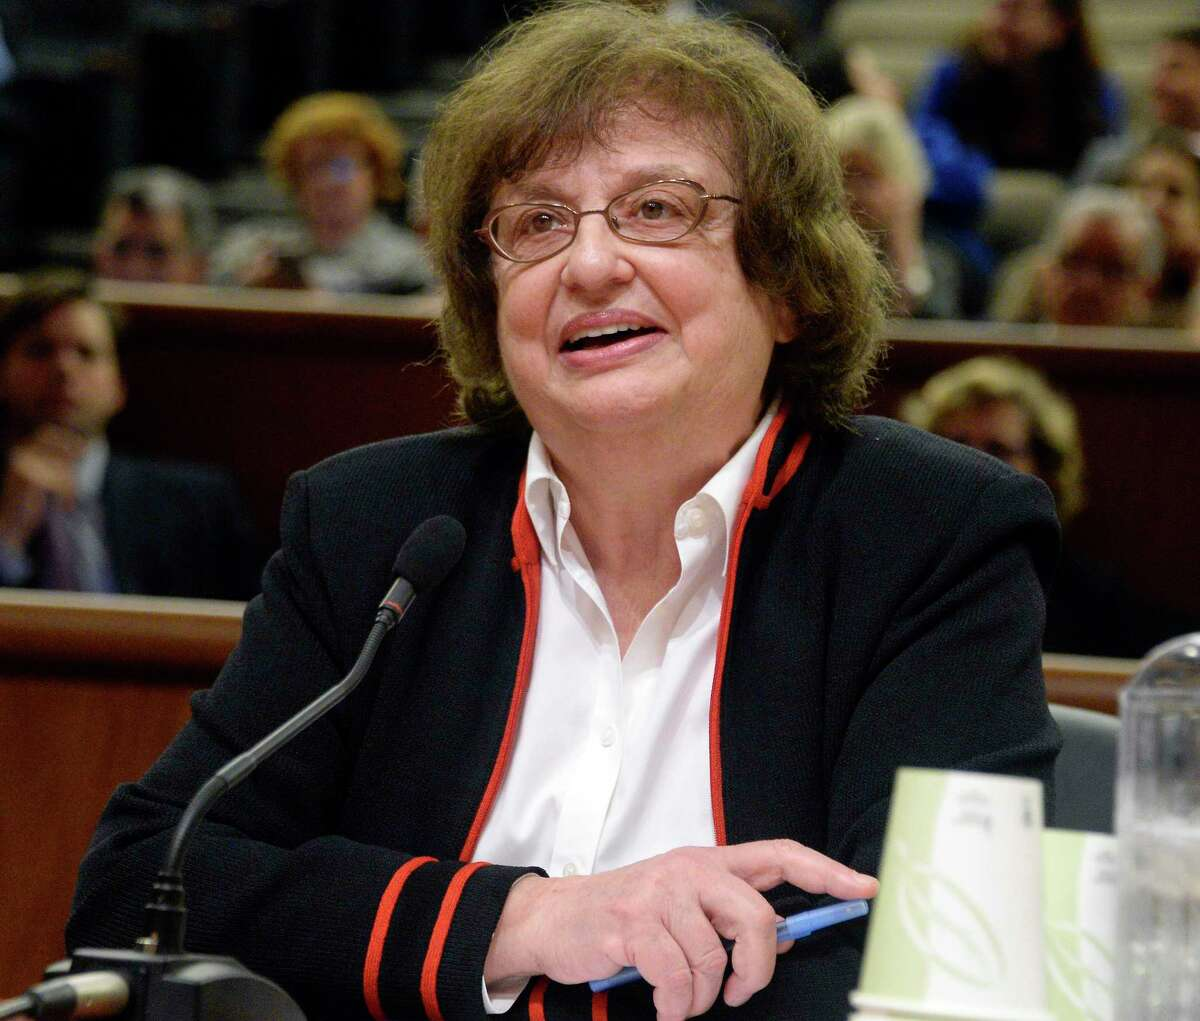 Acting- AG Barbara Underwood is interviewed by the State Legislature's interview committee for an appointment as state attorney general Tuesday May 15, 2018 in Albany, NY. (John Carl D'Annibale/Times Union)